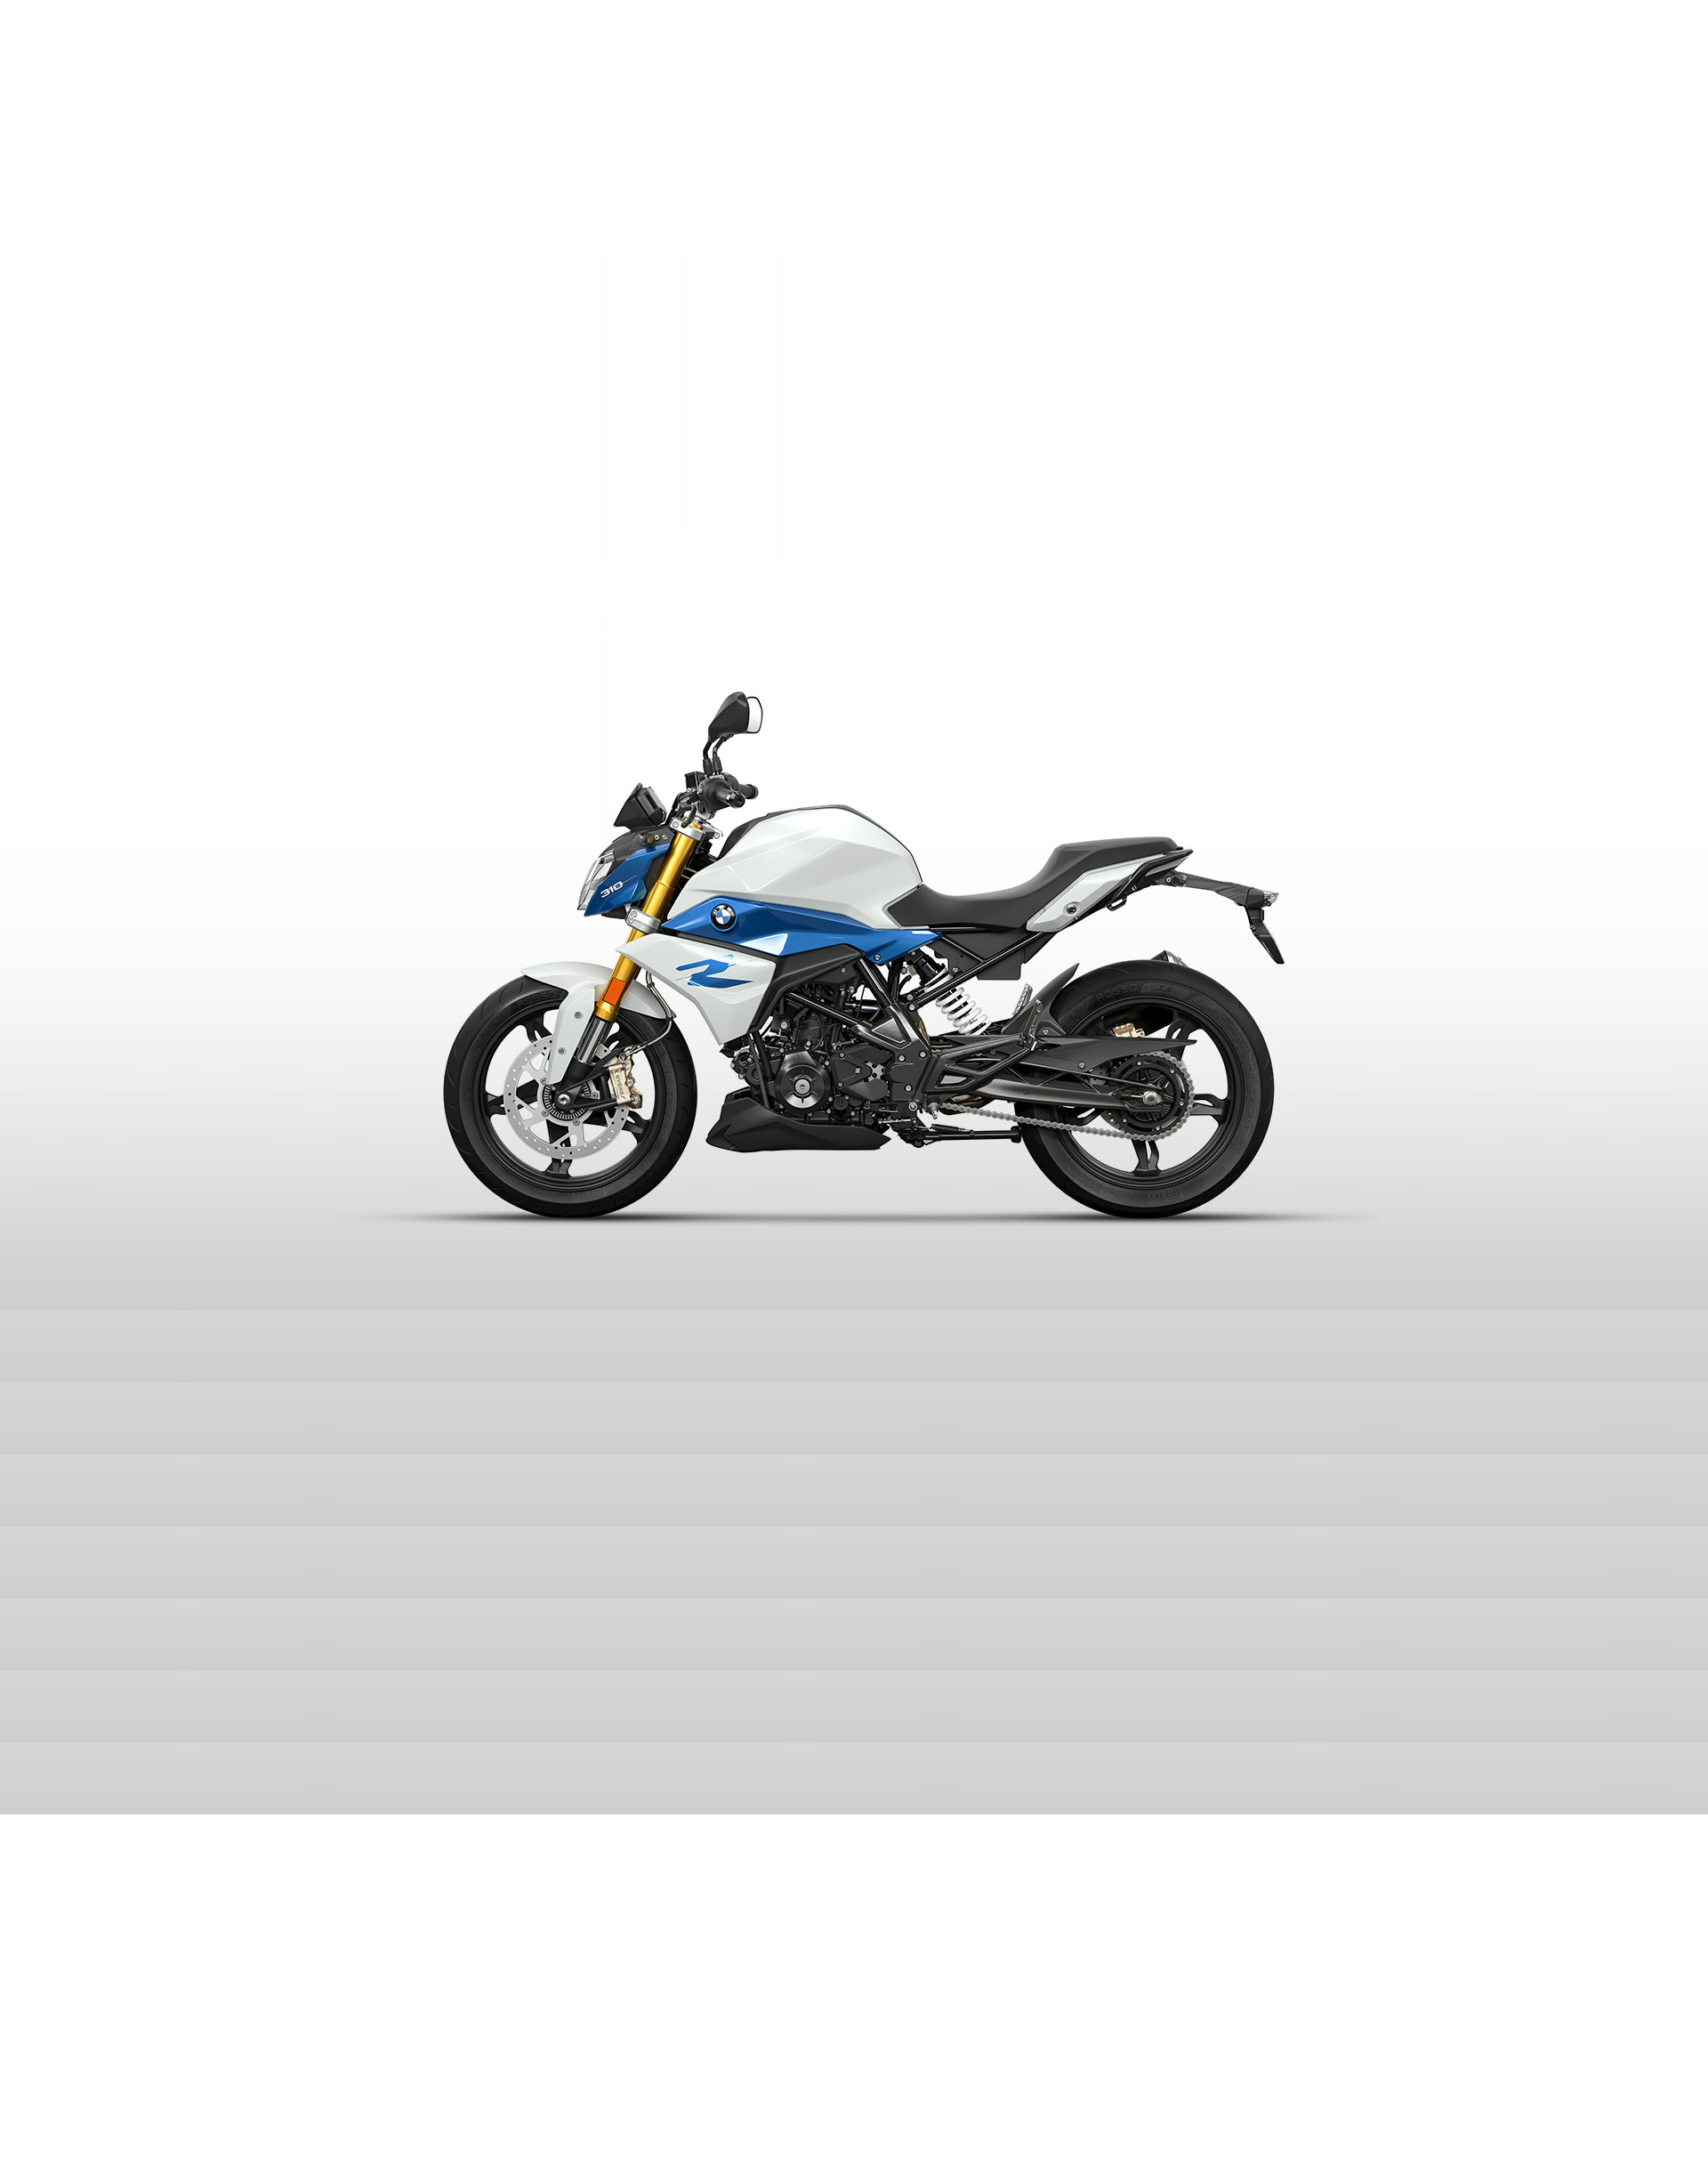 2020 Bmw G 310 R Launched